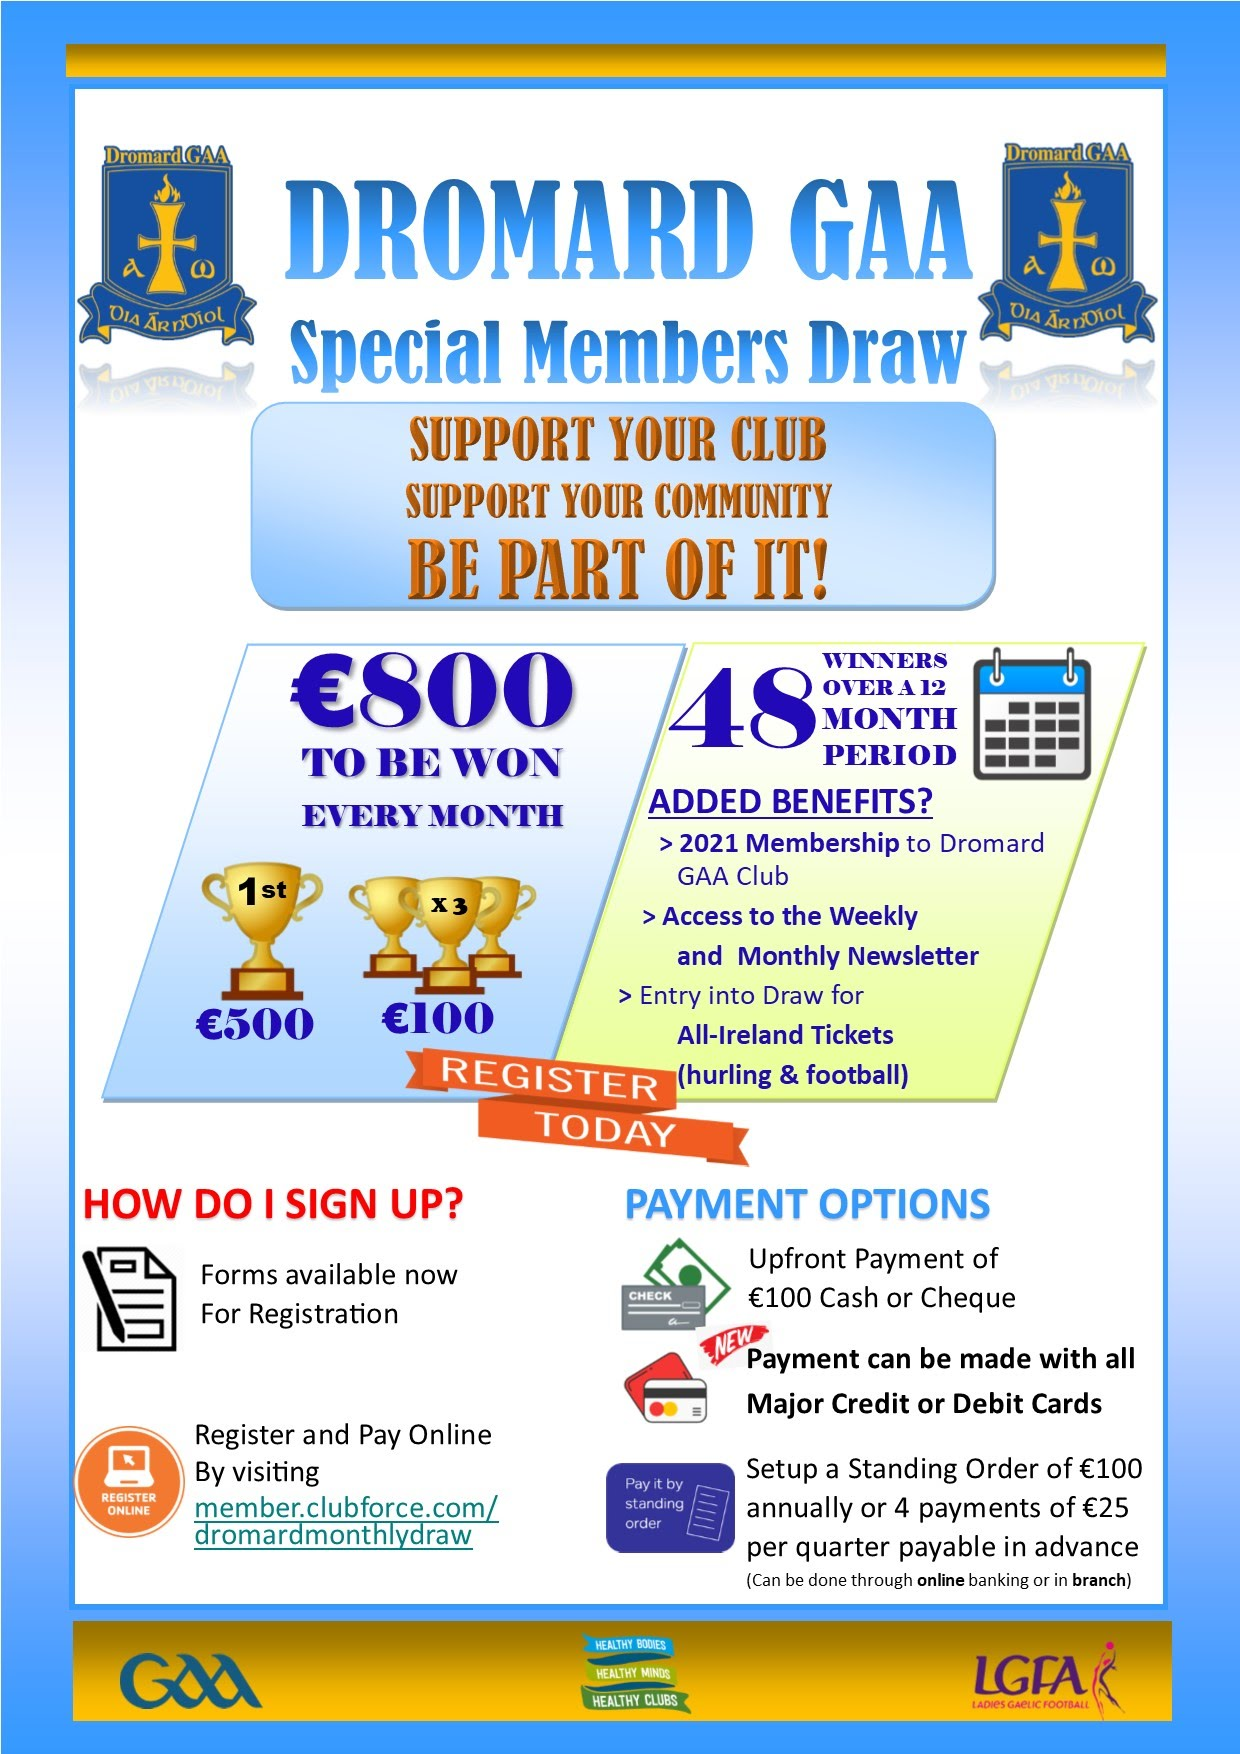 https://member.clubforce.com/dromardmonthlydraw